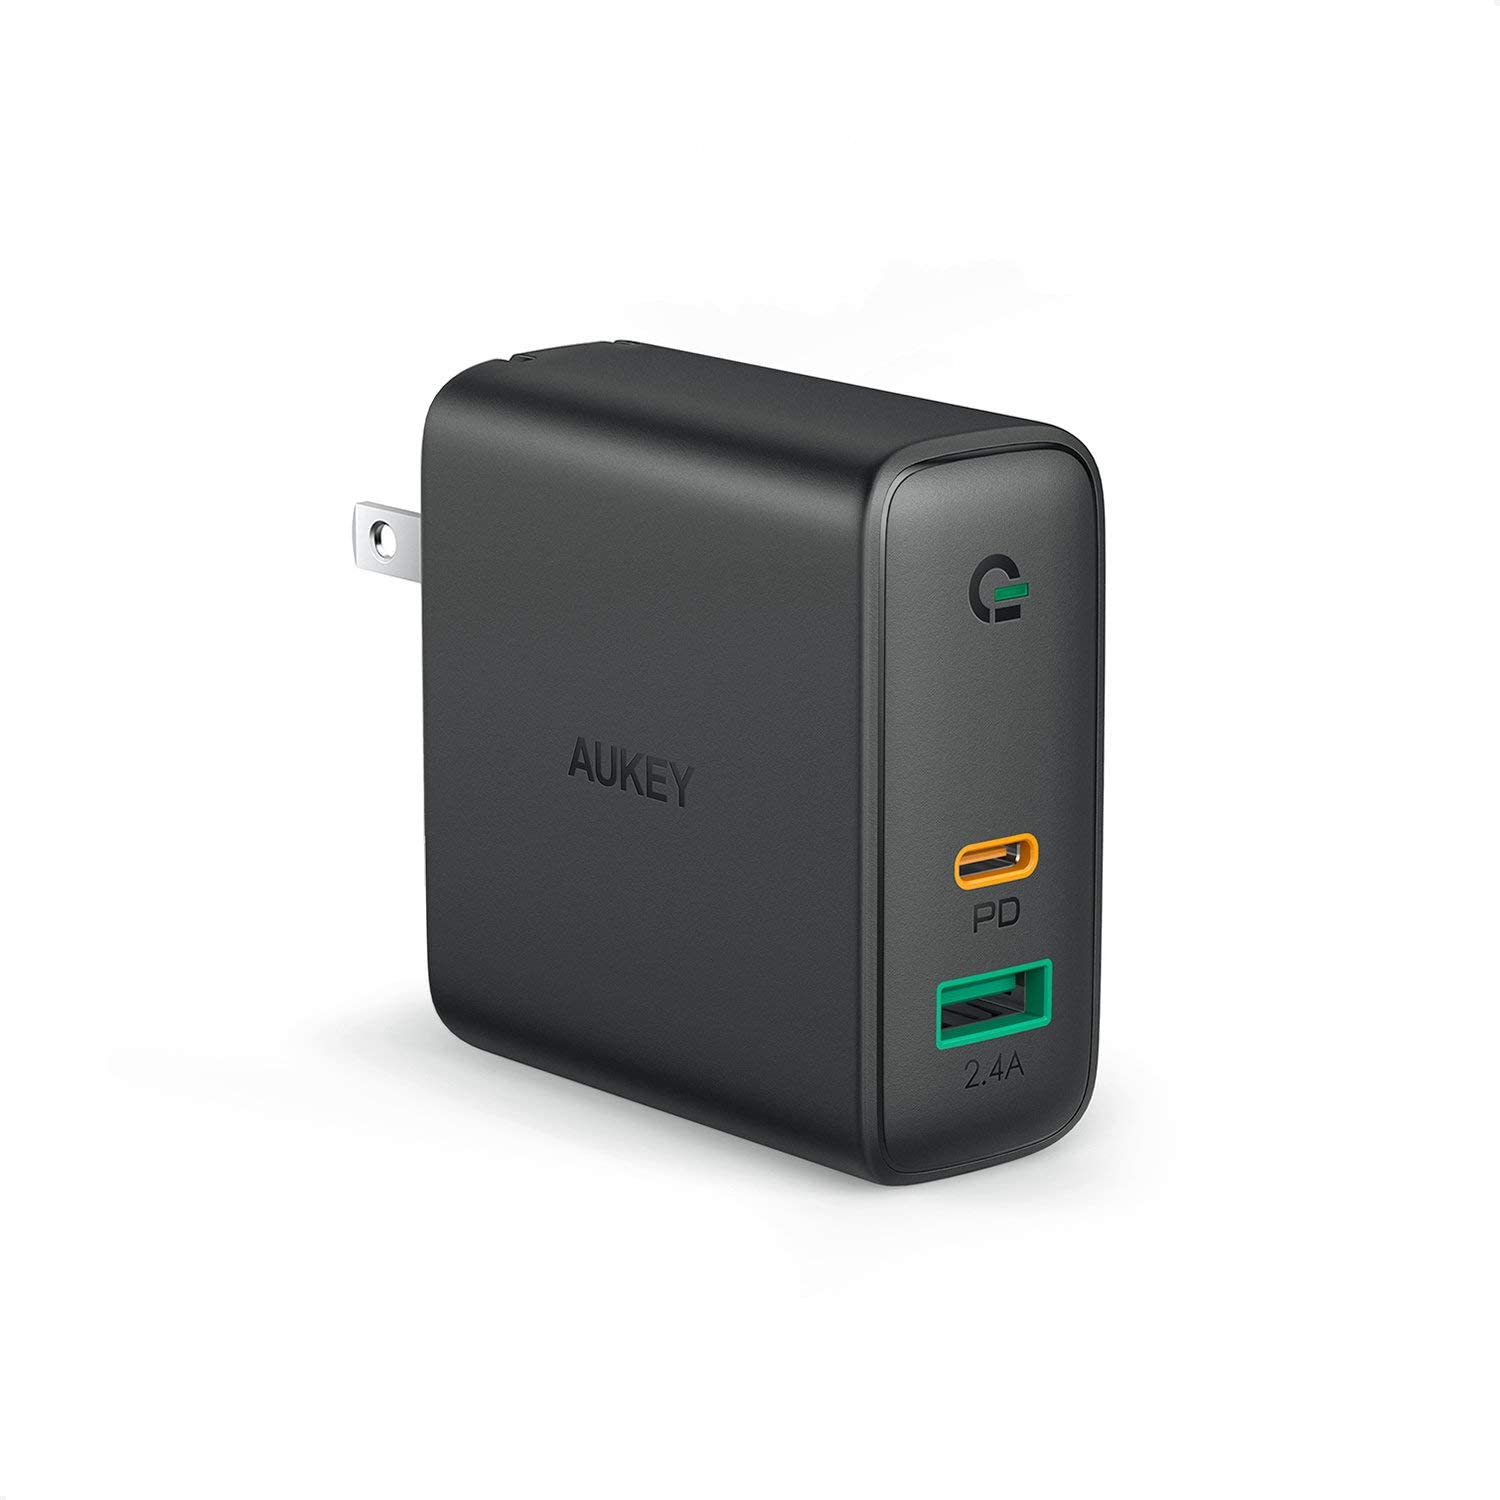 AUKEY 60W PD Charger, USB-C 2-Port Wall Charger with Dynamic Detect & USB-C 60W Power Delivery 3.0 + USB-A Charger $25.50 FS w/ Prime